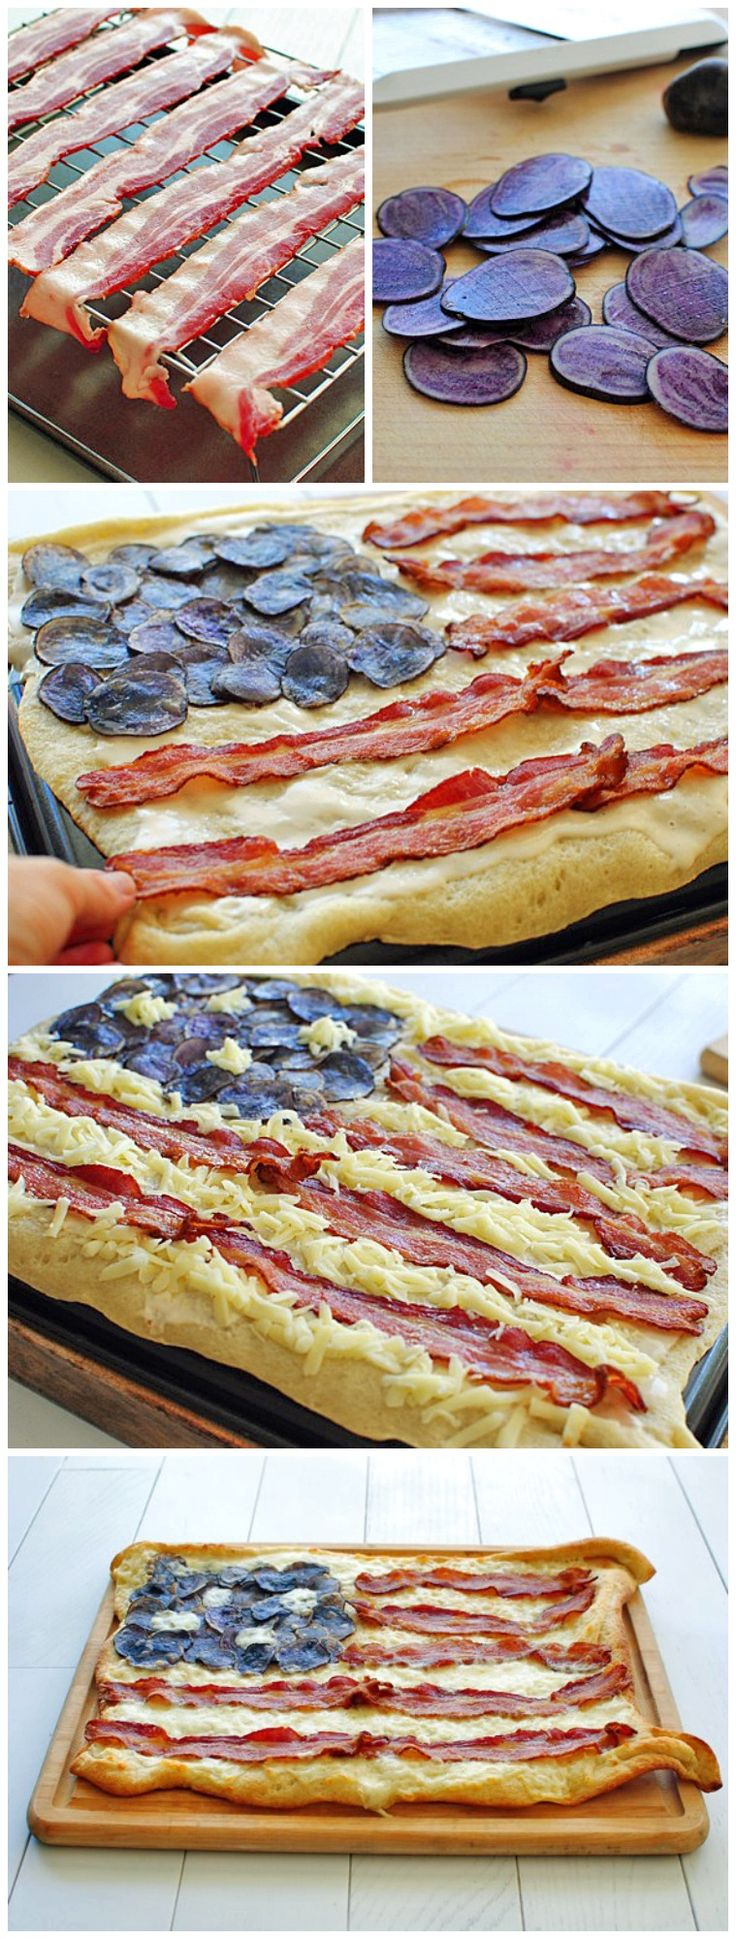 Bacon Flag Pizza. I Think I would skip the purple potato slices and just use another meat to give the same idea